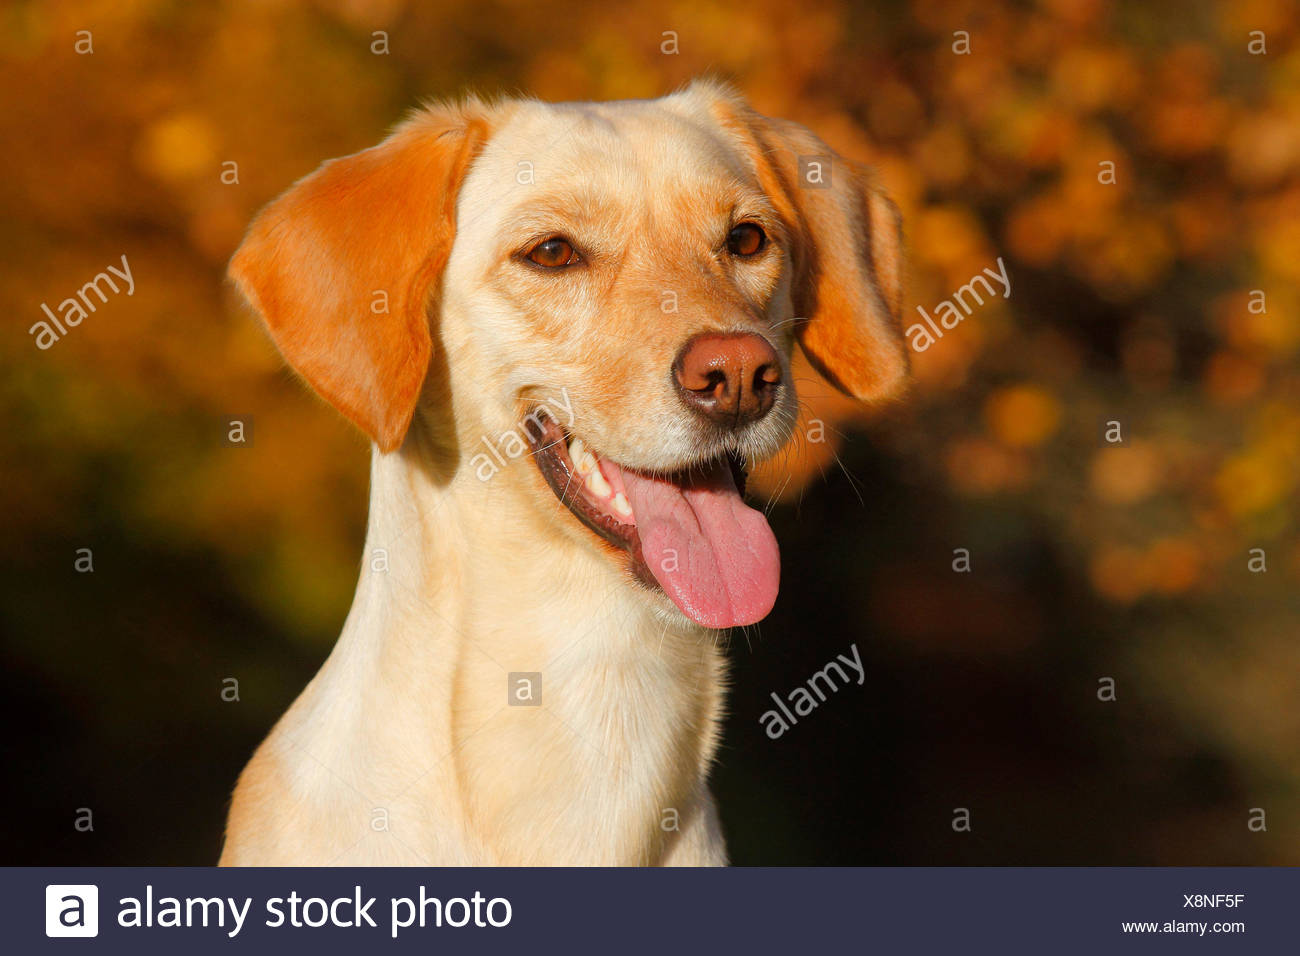 mixed breed dog (Canis lupus f. familiaris), Labrador Magyar Vizsla mixed breed dog with tongue hanging out, portrait, Germany - Stock Image